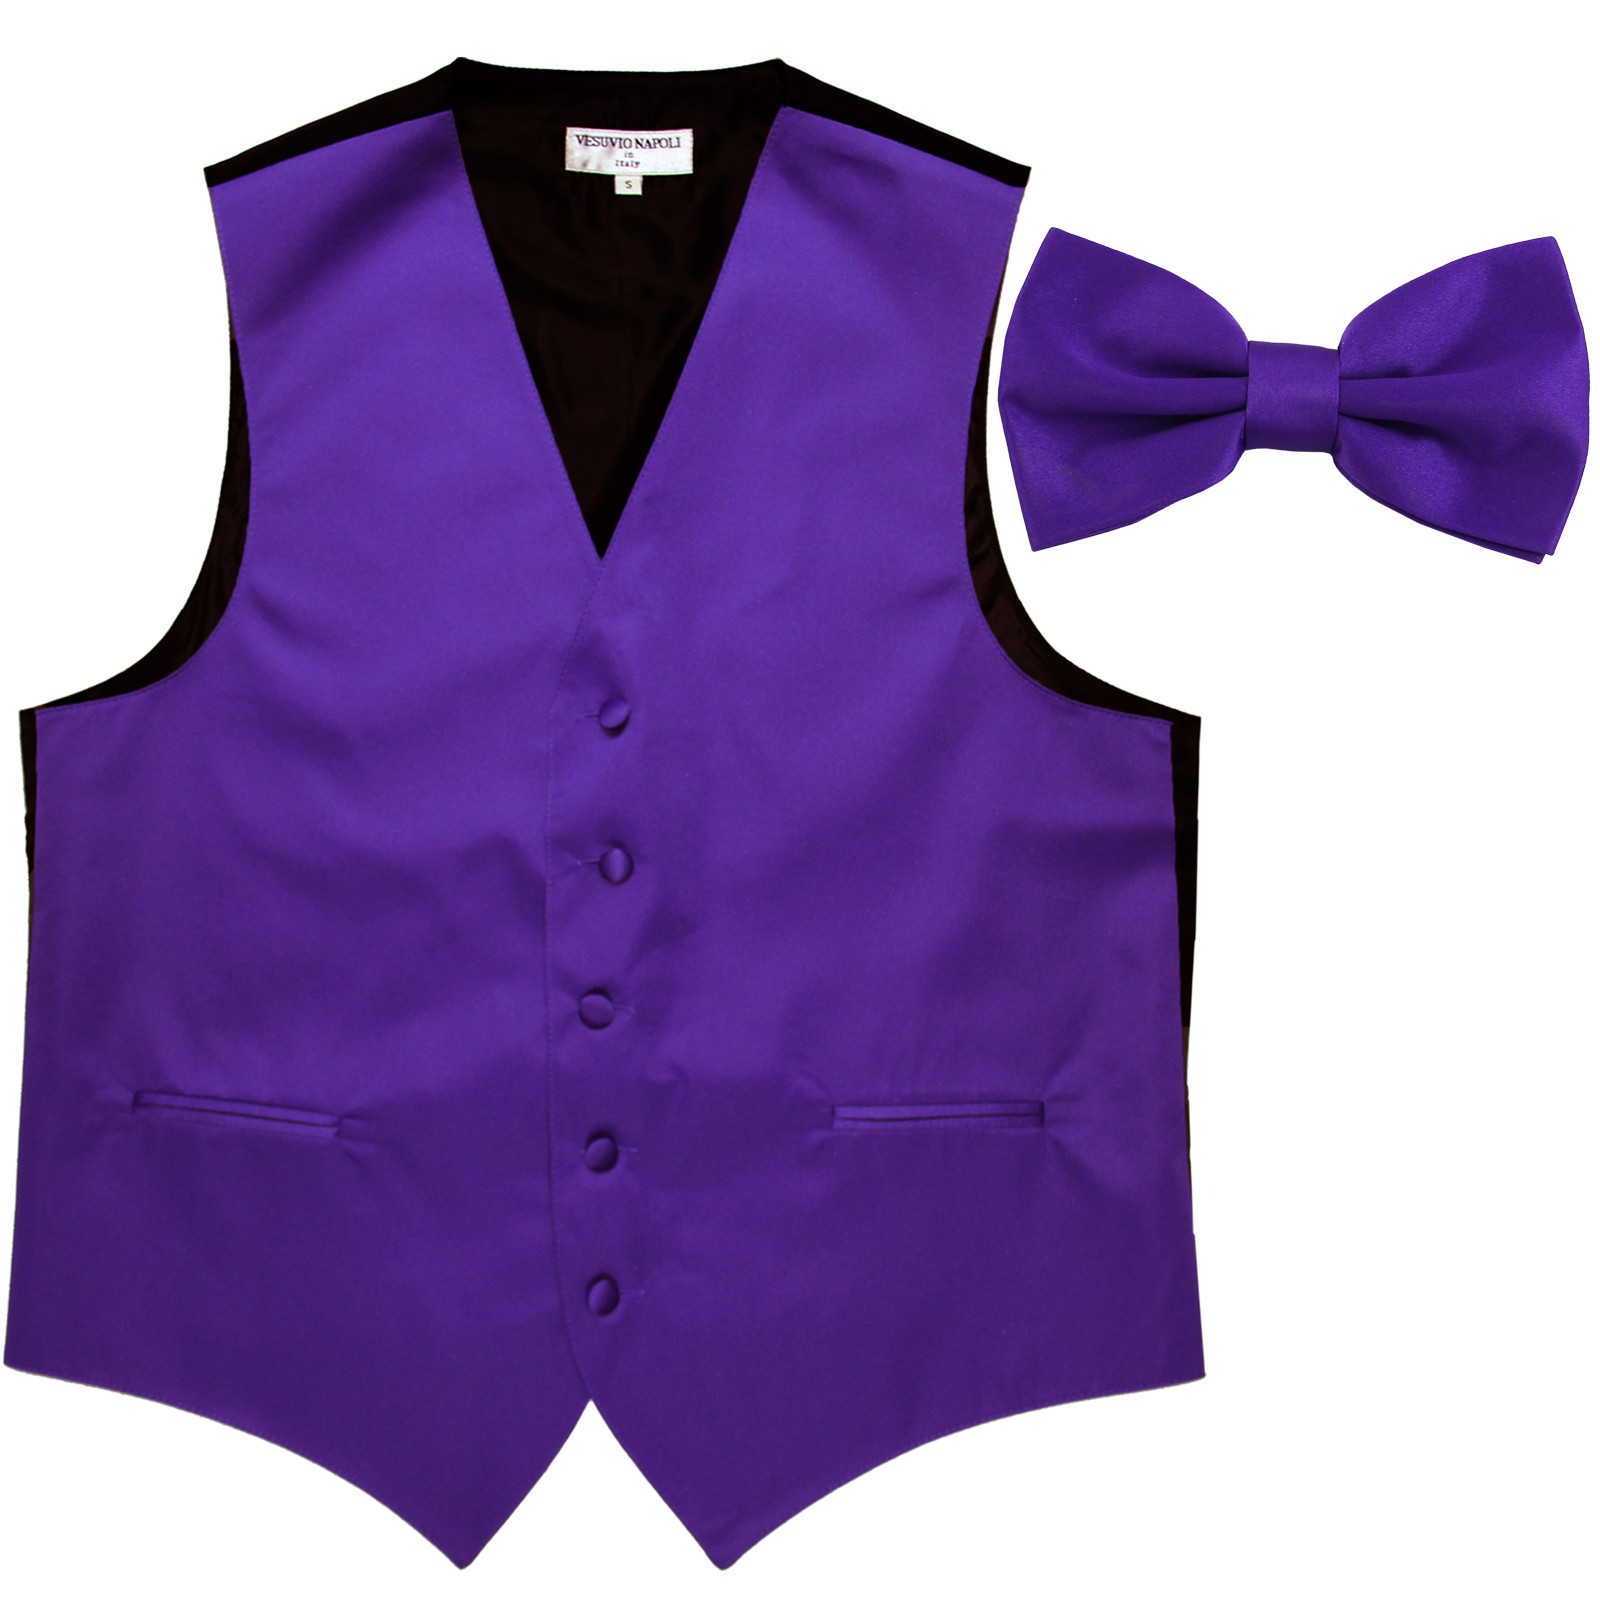 New Men's Formal Vest Tuxedo Waistcoat with Bowtie wedding prom party purple